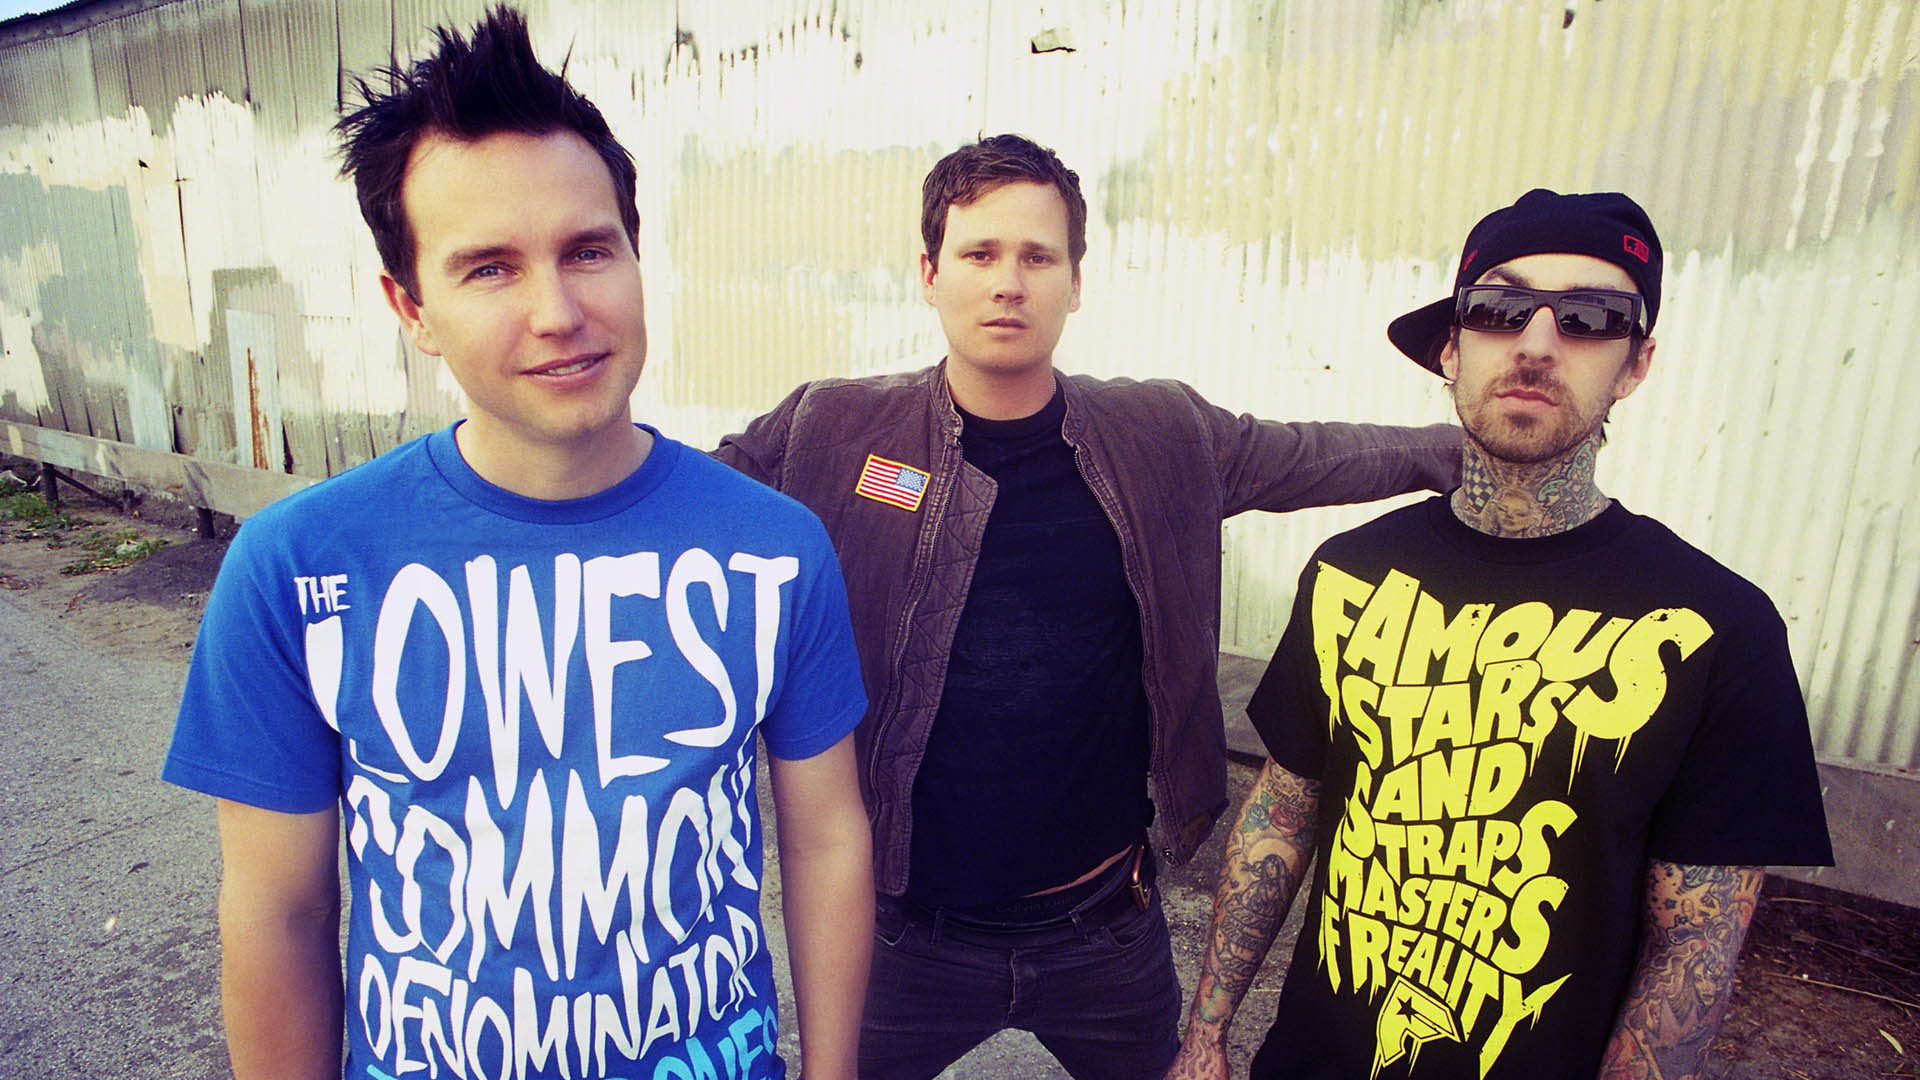 blink 182 Blink-182 is an american rock band consisting of vocalist and bass guitarist mark hoppus, vocalist and guitarist tom delonge, and drummer travis barker they have sold over 35 million albums worldwide since forming in poway, california in 1992.